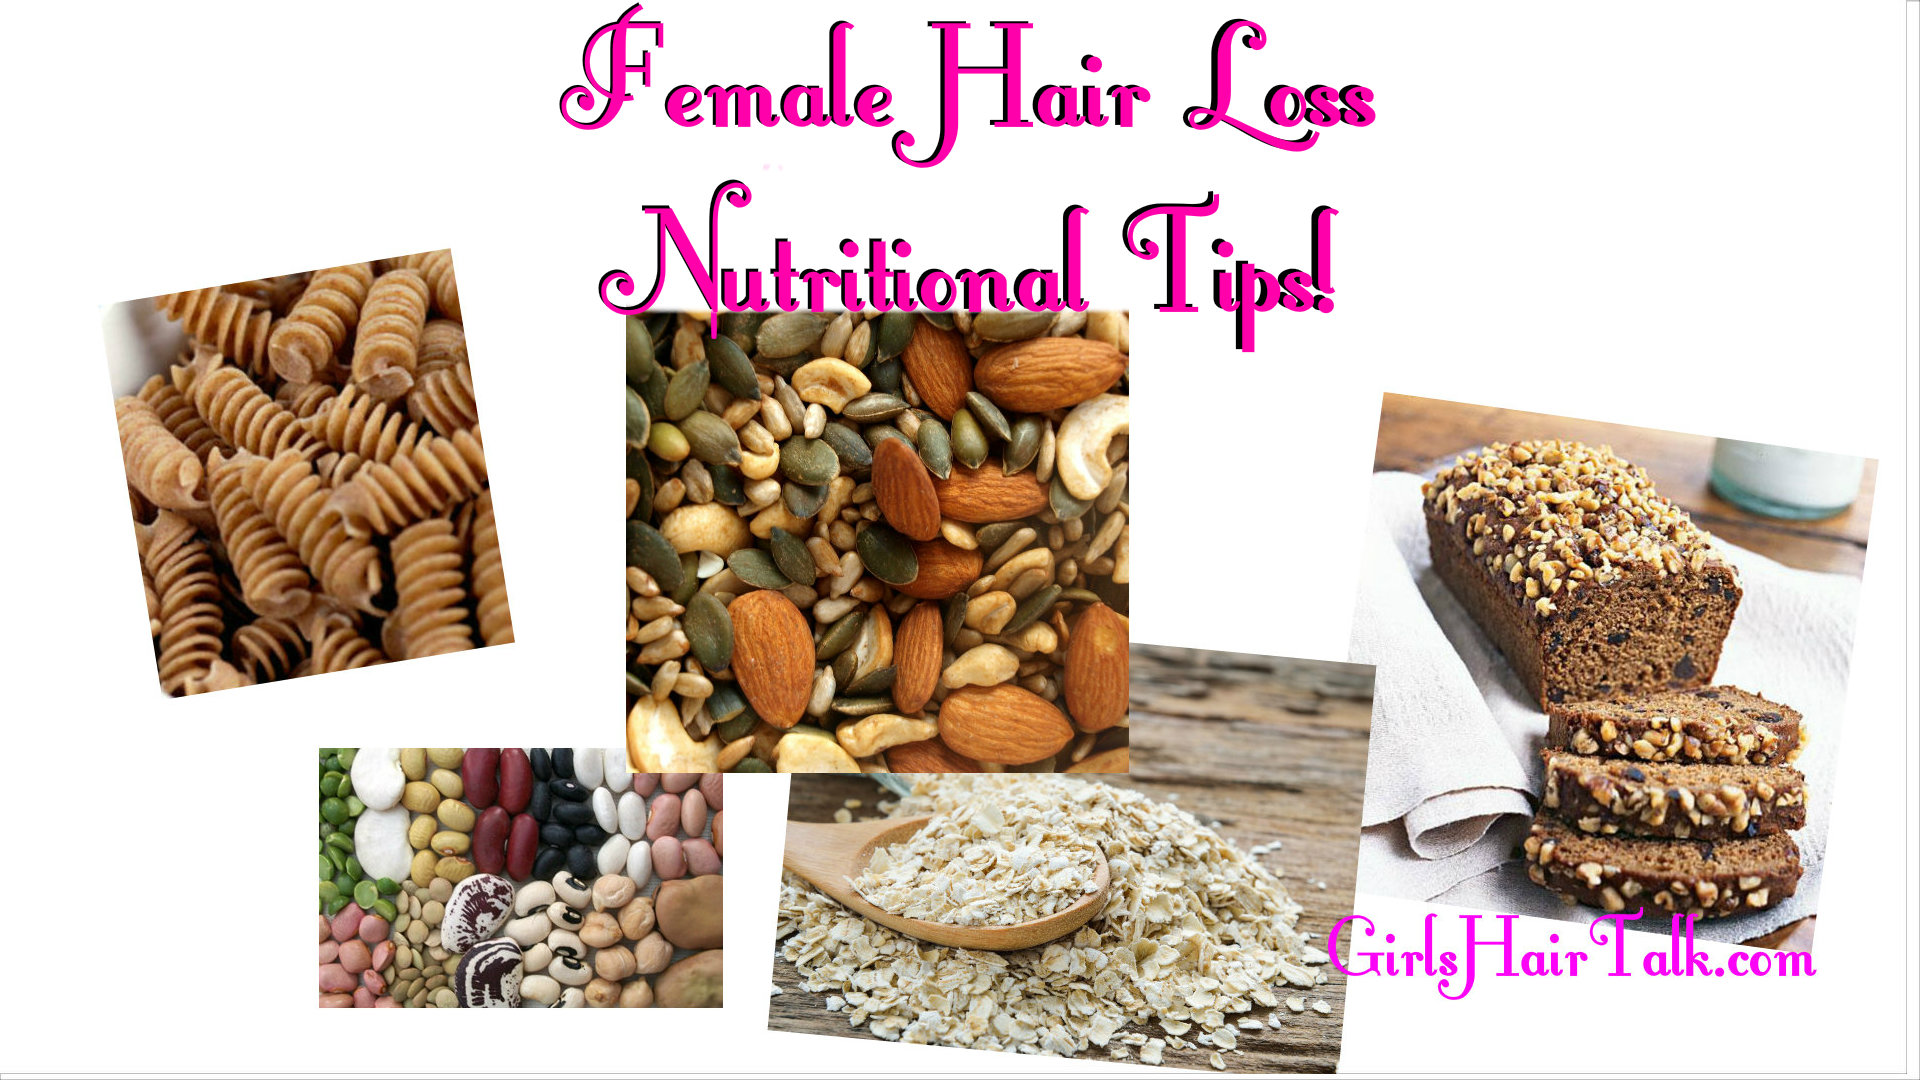 Nutrition pictures that help hair growth such as brown rice, 100% whole wheat pasta and wheat bread.